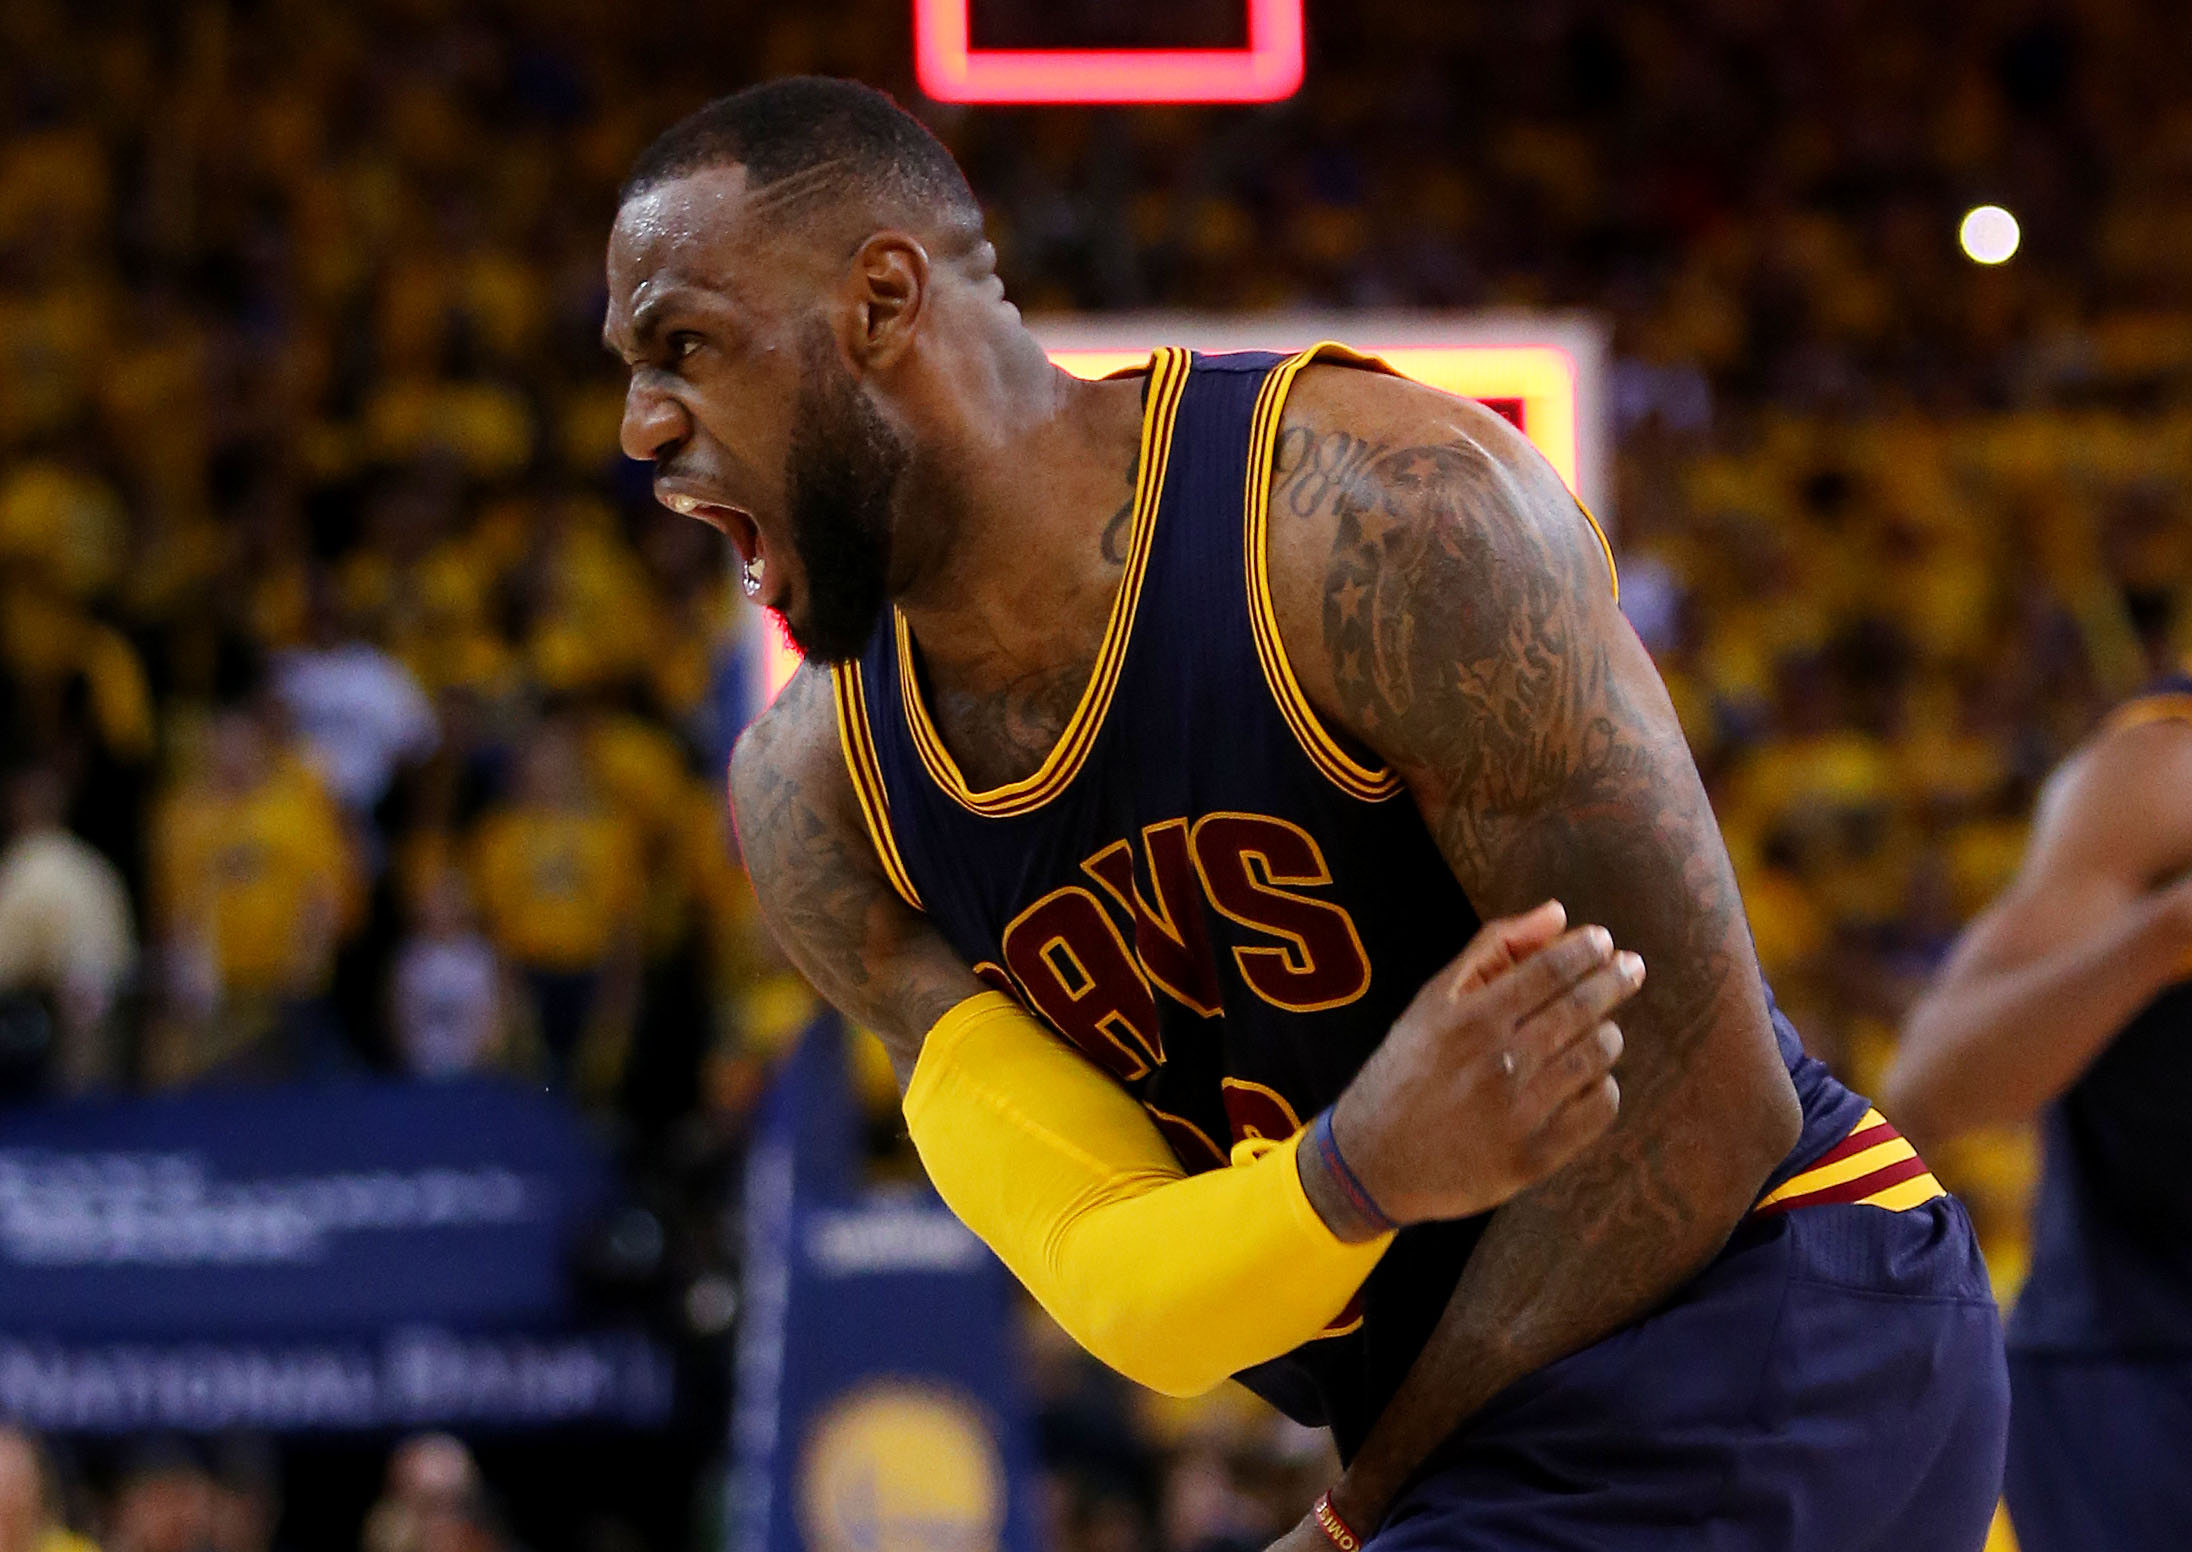 OAKLAND, CA - JUNE 07:  LeBron James #23 of the Cleveland Cavaliers celebrates their 95 to 93 win over the Golden State Warriors in overtime  during Game Two of the 2015 NBA Finals at ORACLE Arena on June 7, 2015 in Oakland, California. (Photo by Ezra Sha